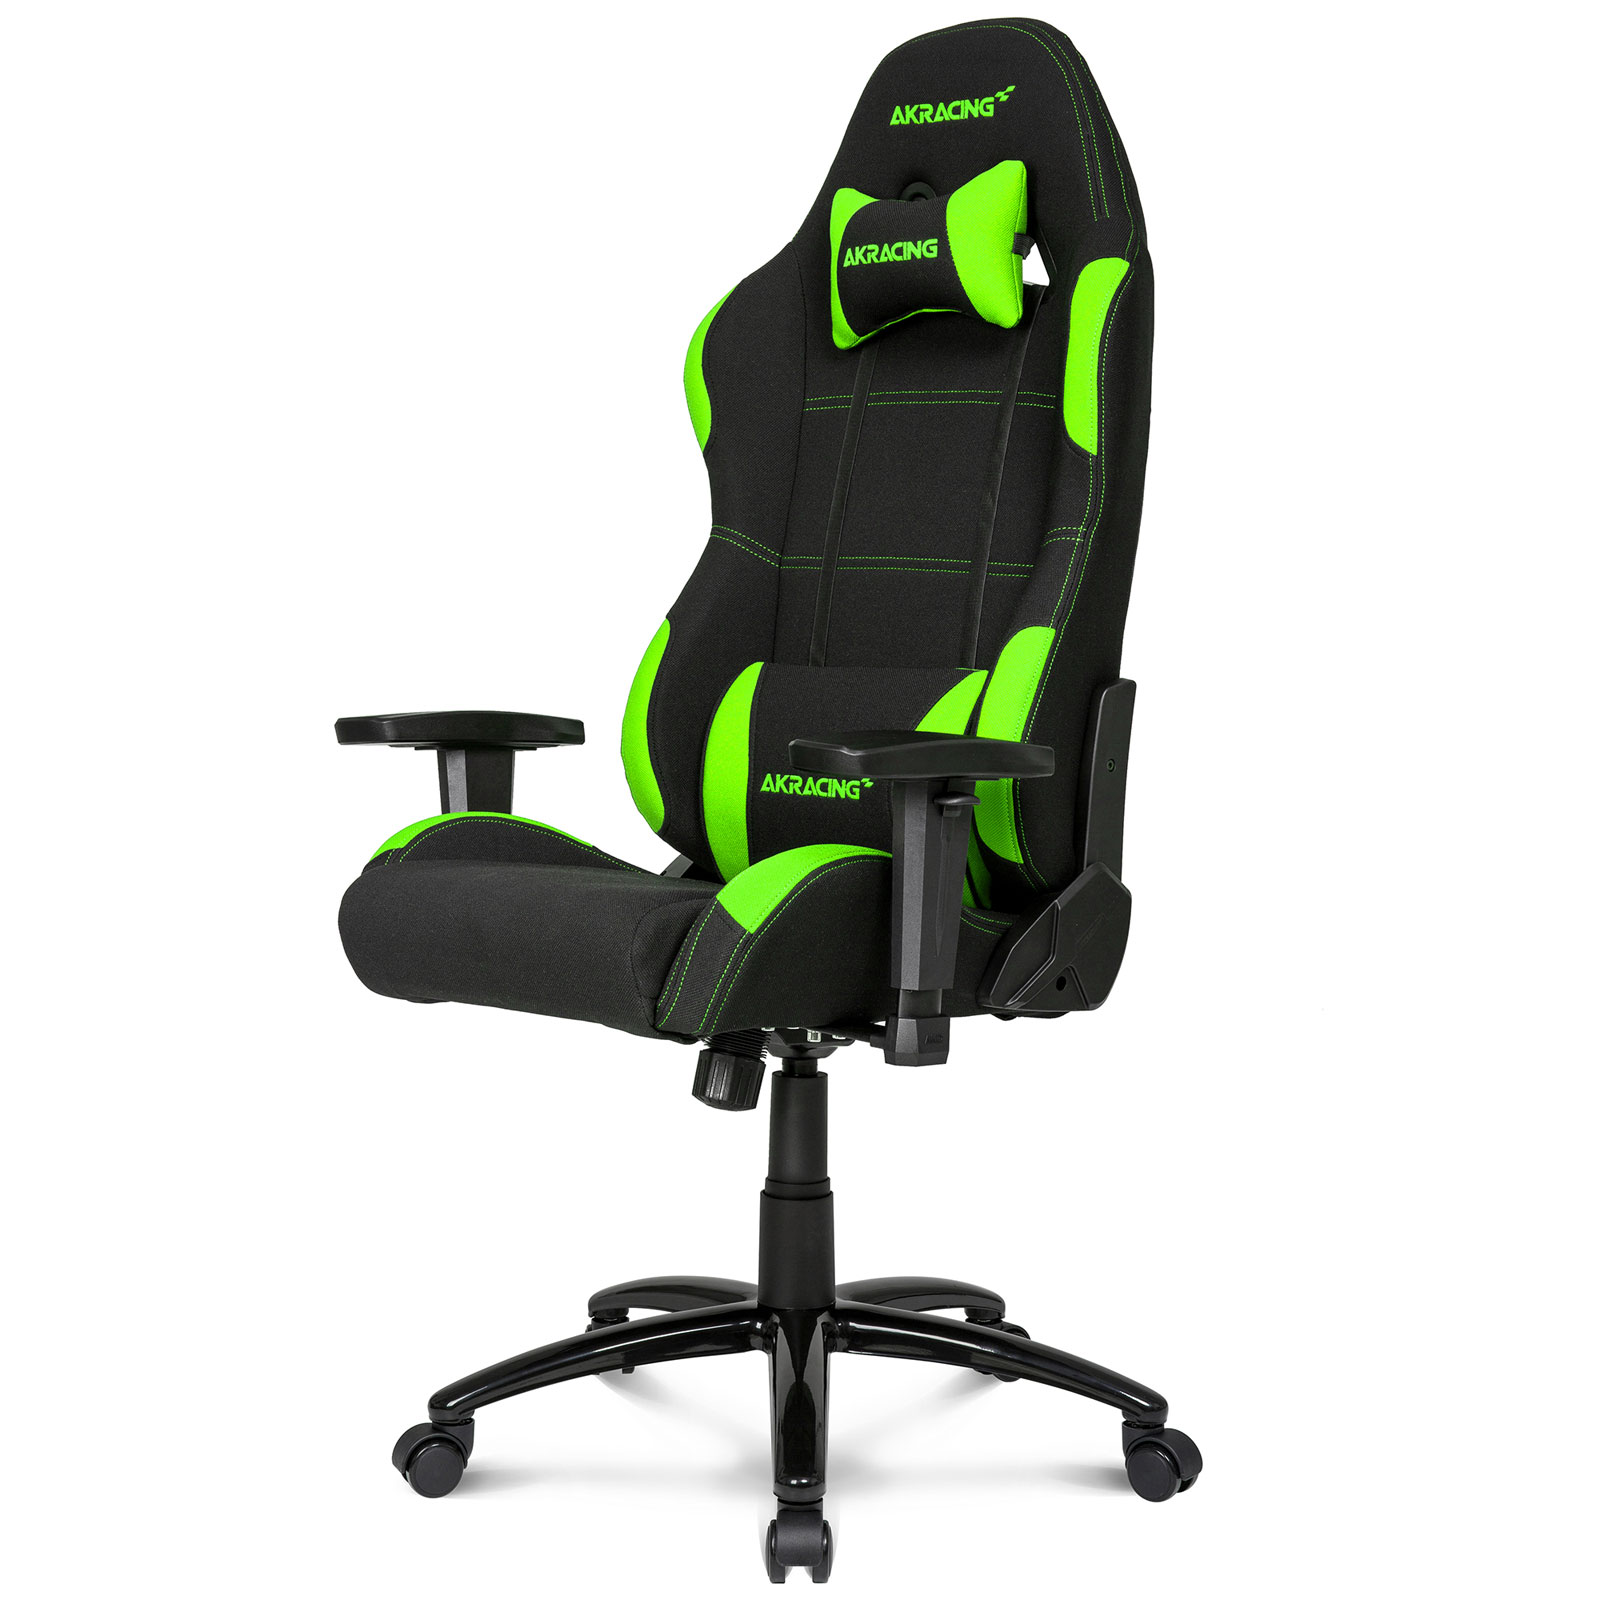 Fauteuils Gamer Akracing Gaming Chair Vert Fauteuil Gamer Akracing Sur